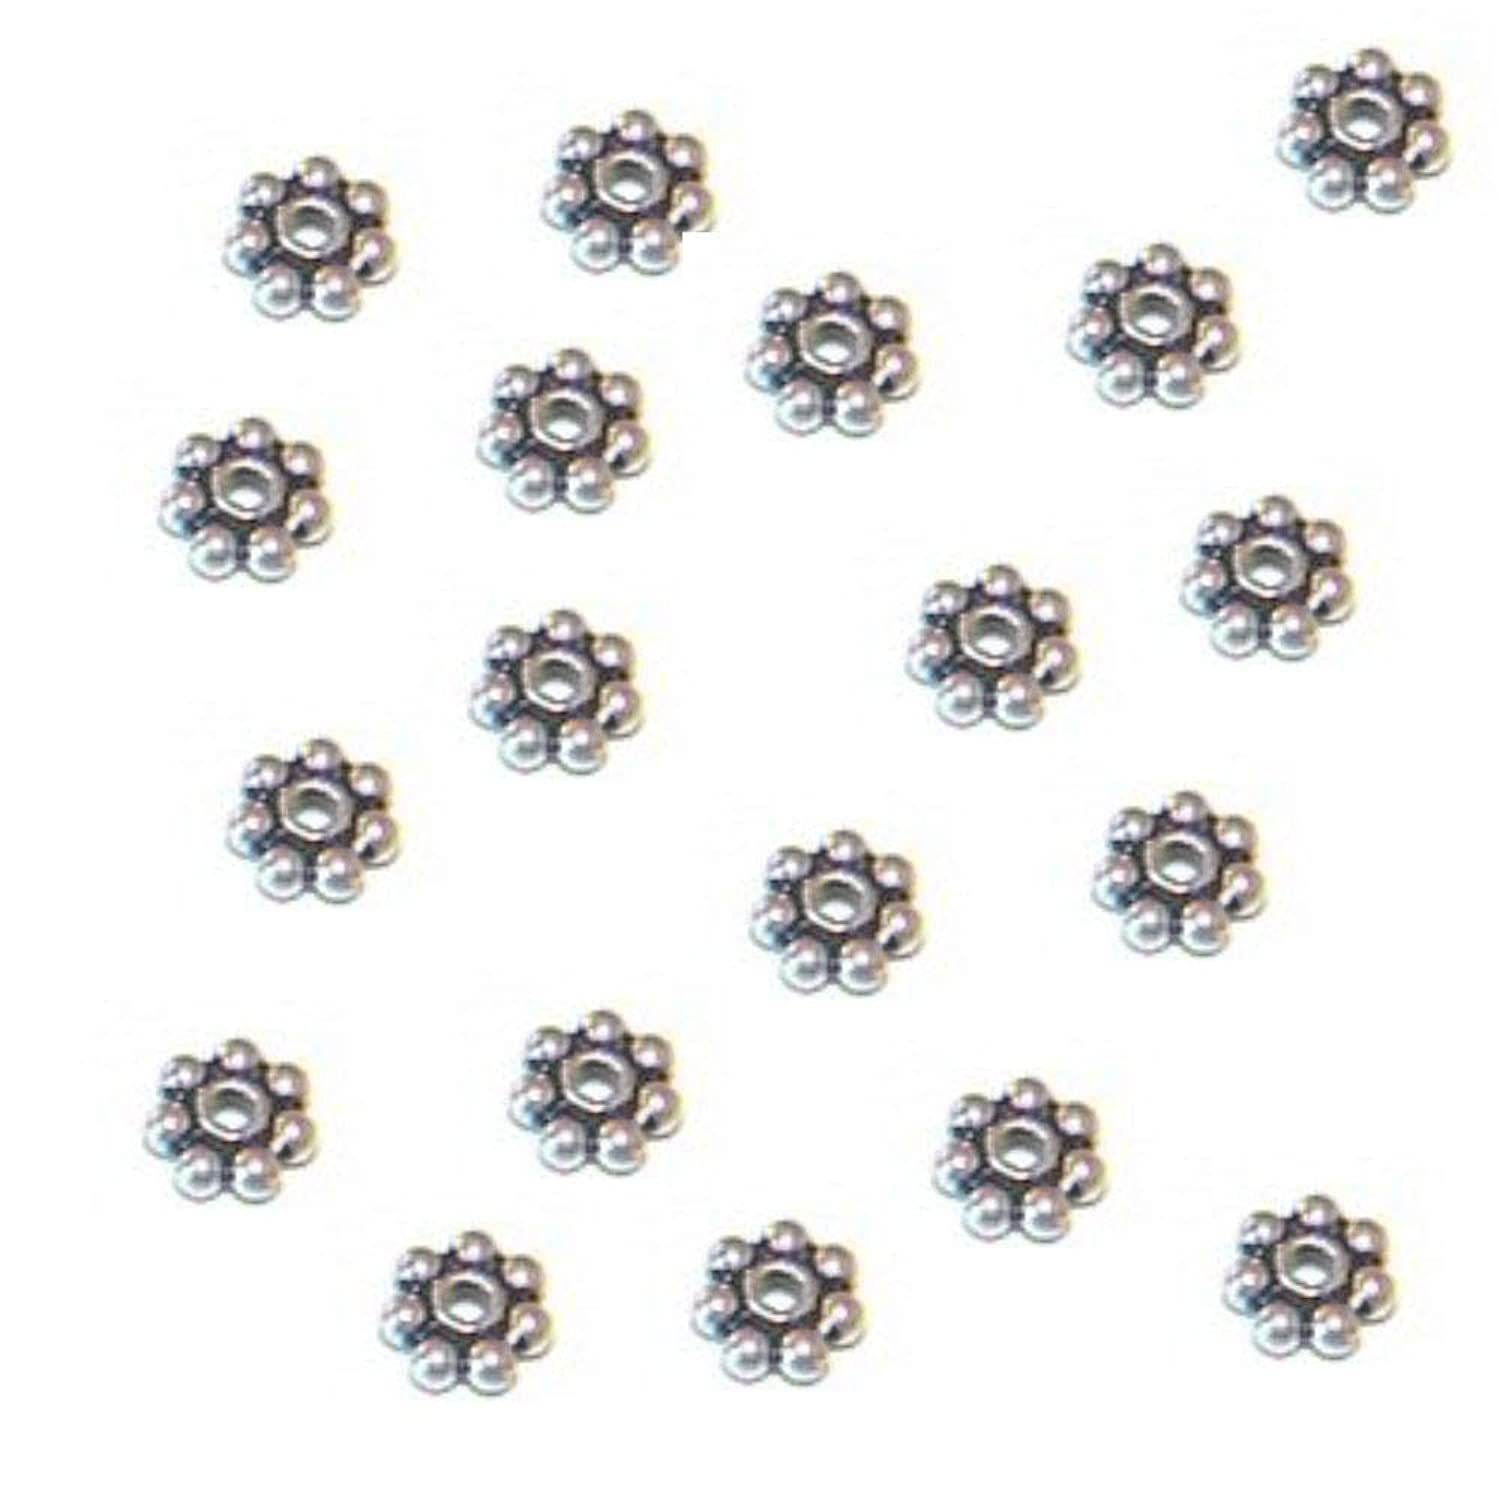 Hidden Hollow Beads 100 Pcs 4 mm Sterling Silver Bali Daisy Spacer,Antiqued